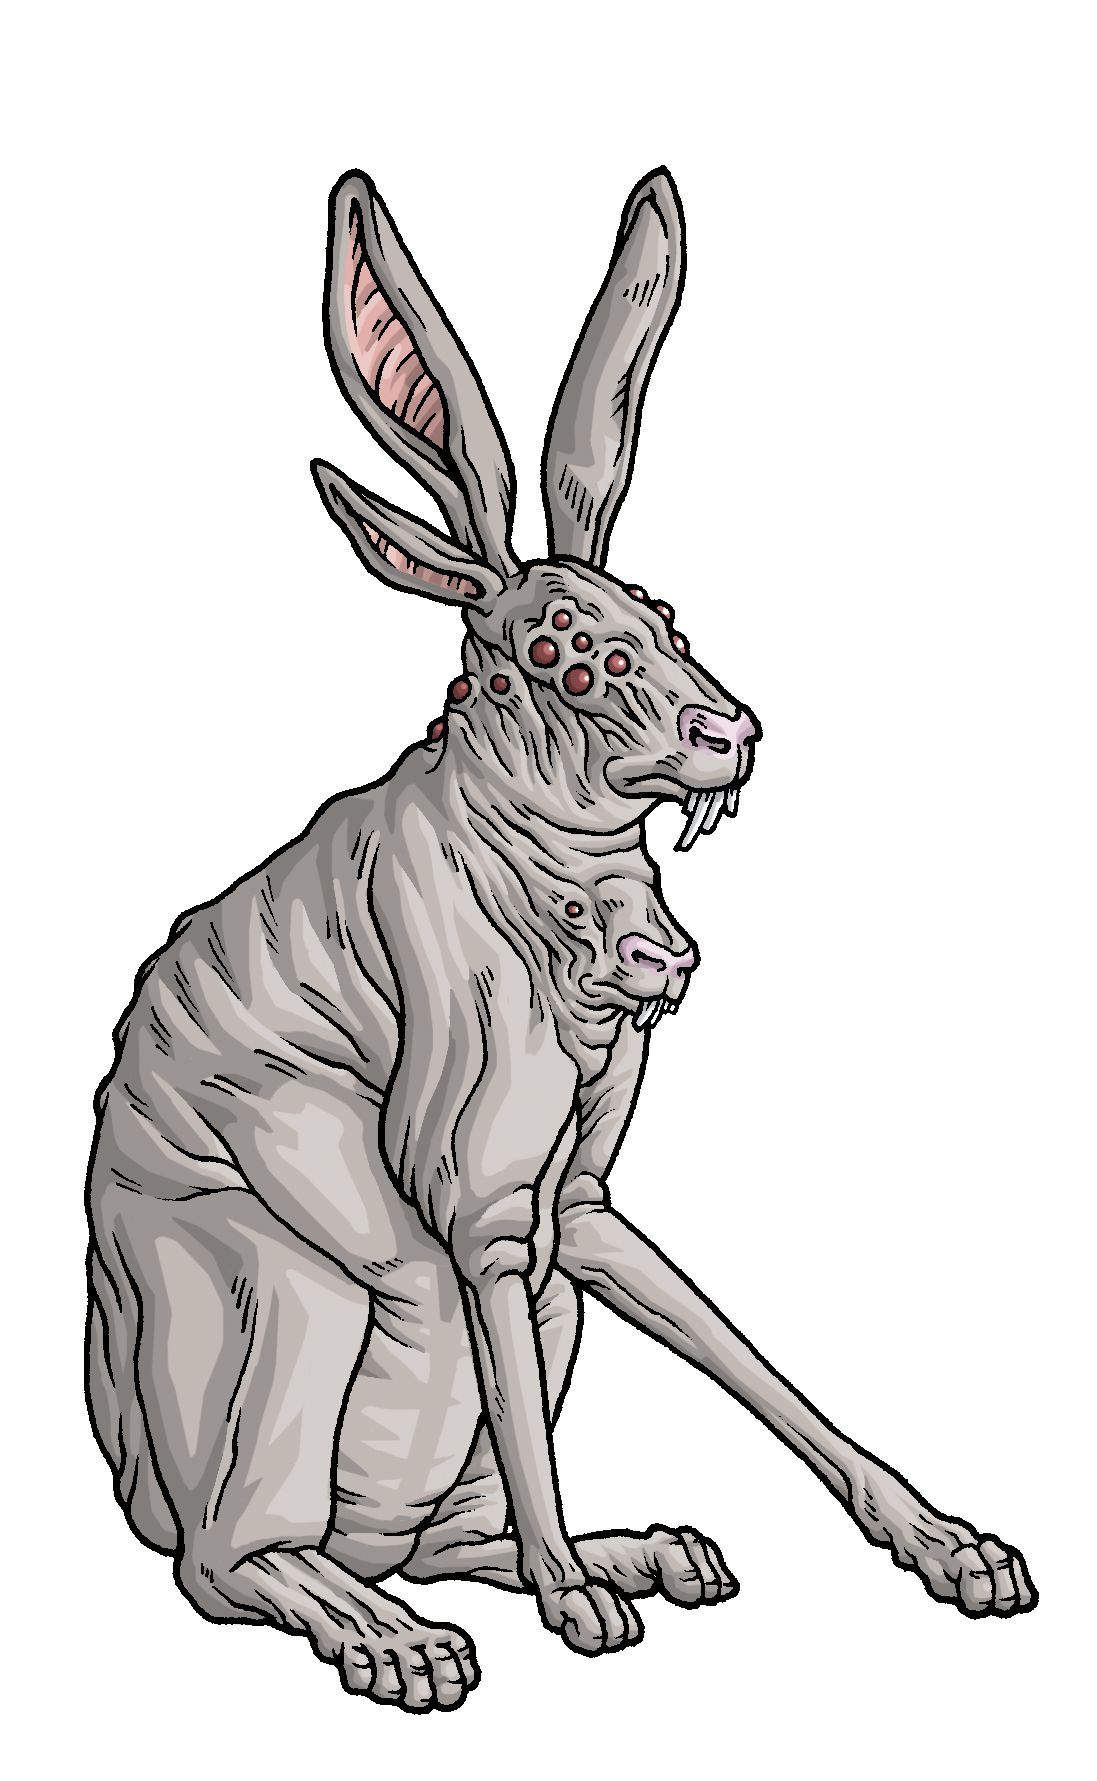 HP Lovecraft's rabbits from The Colour Out of Space